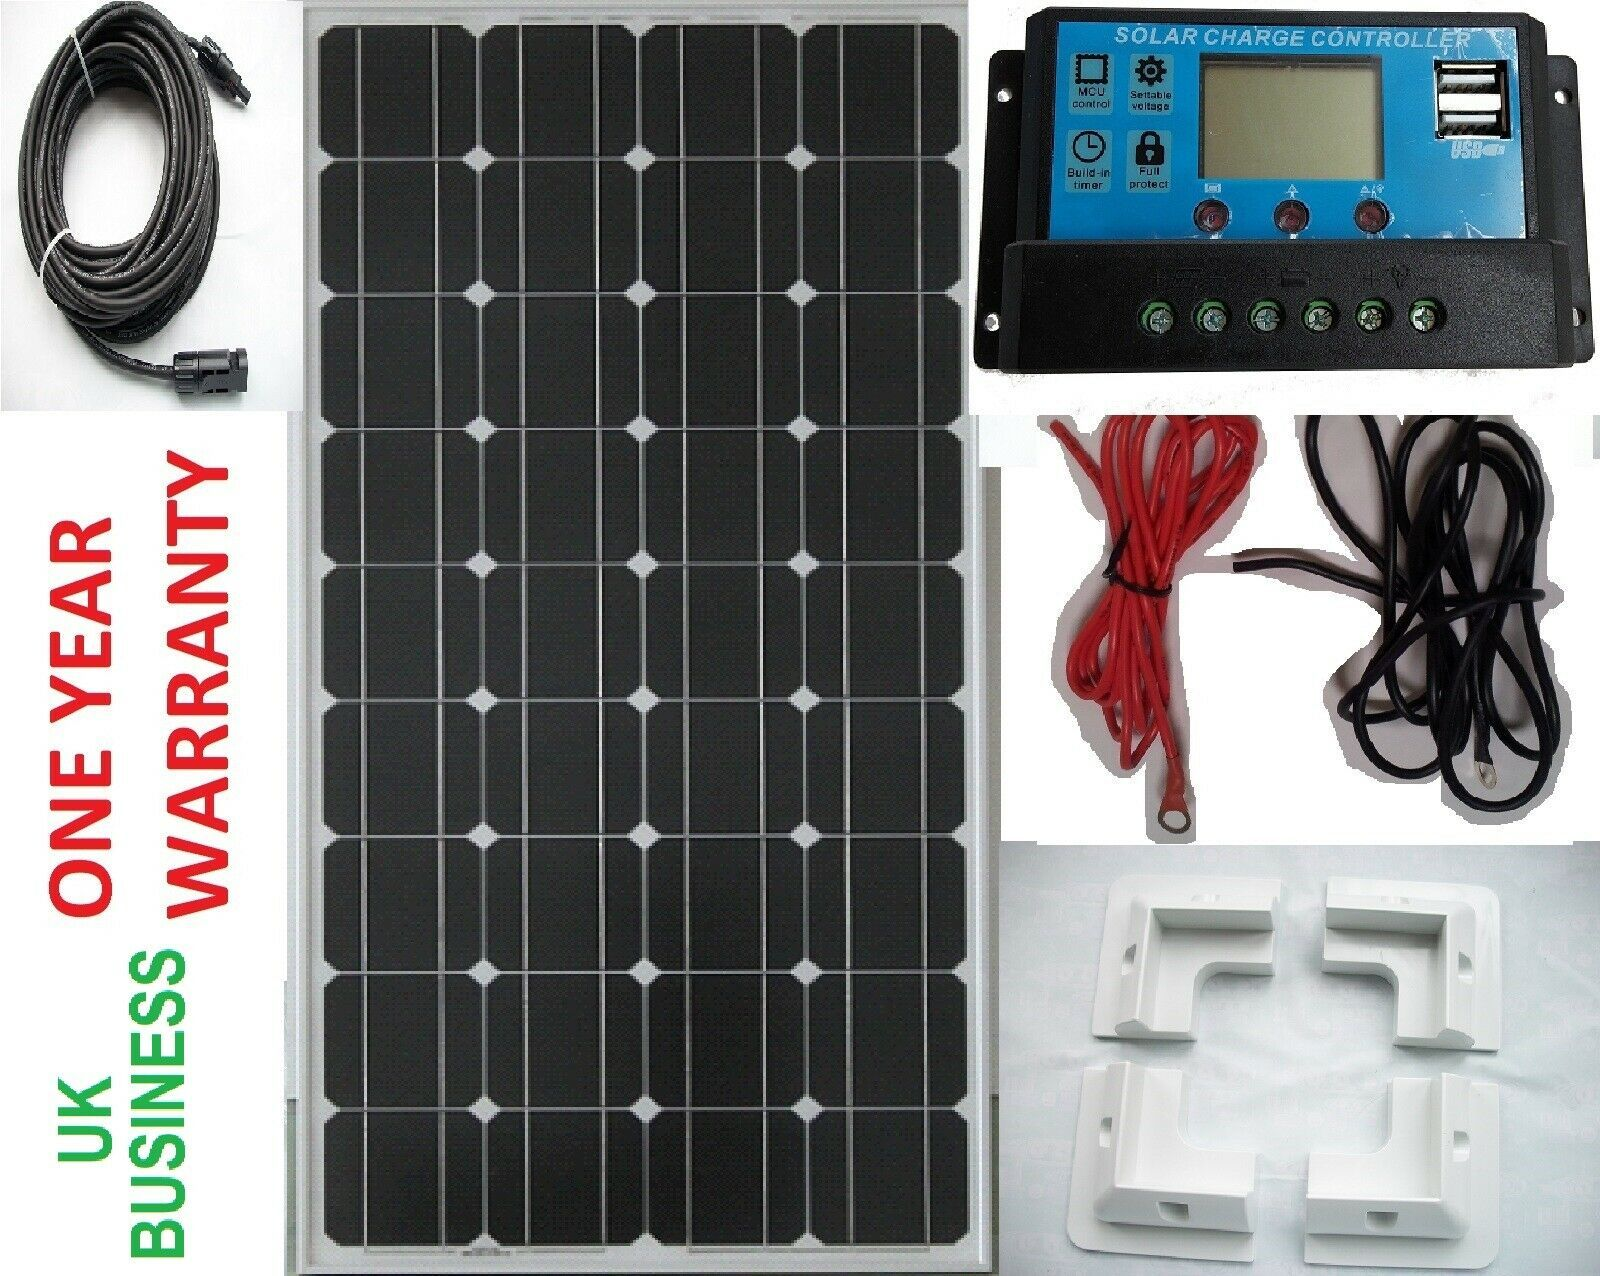 12v 100 Watt Solar Panel In 2020 100 Watt Solar Panel Solar Panels Solar Panel Kits